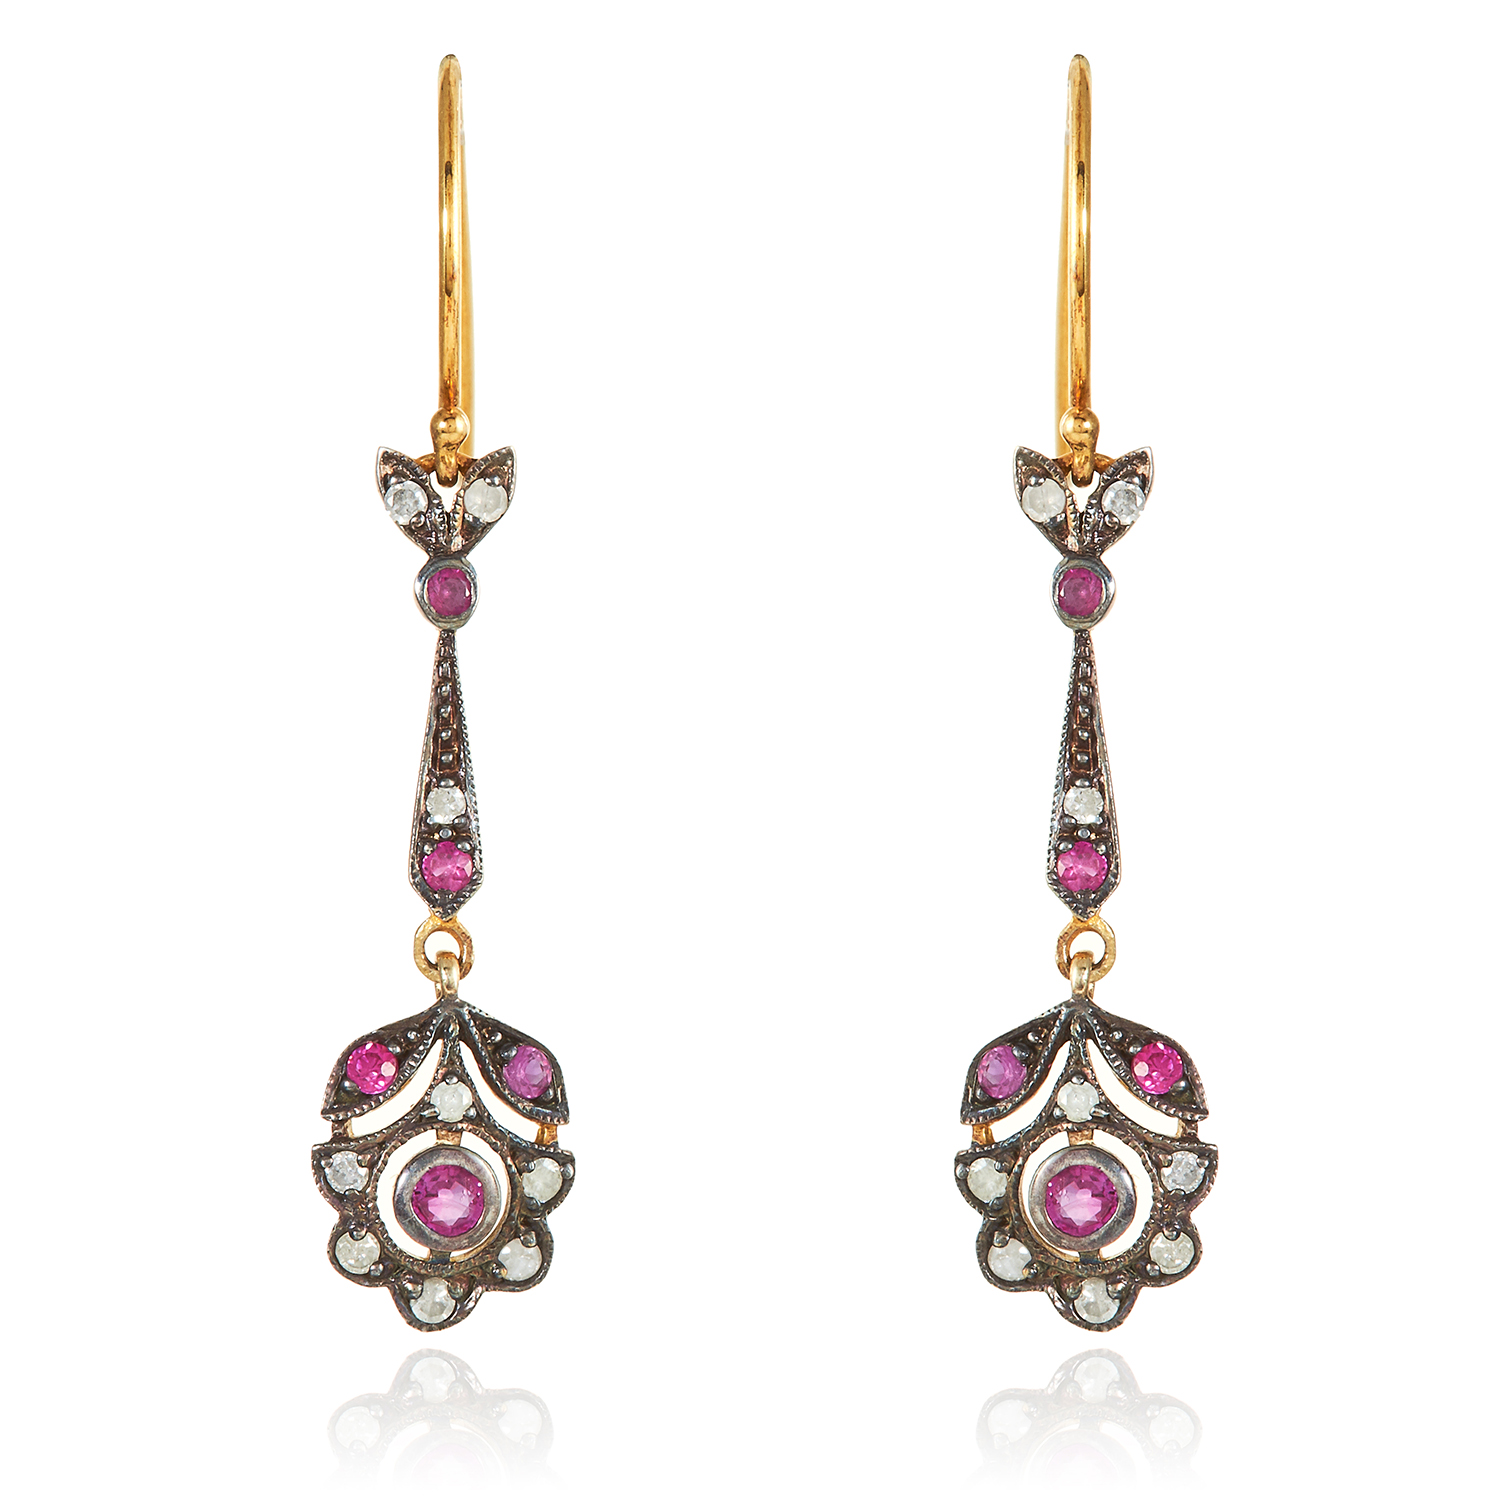 Los 305 - A PAIR OF RUBY AND DIAMOND EARRINGS in gold and silver, each cluster suspended below a jewelled